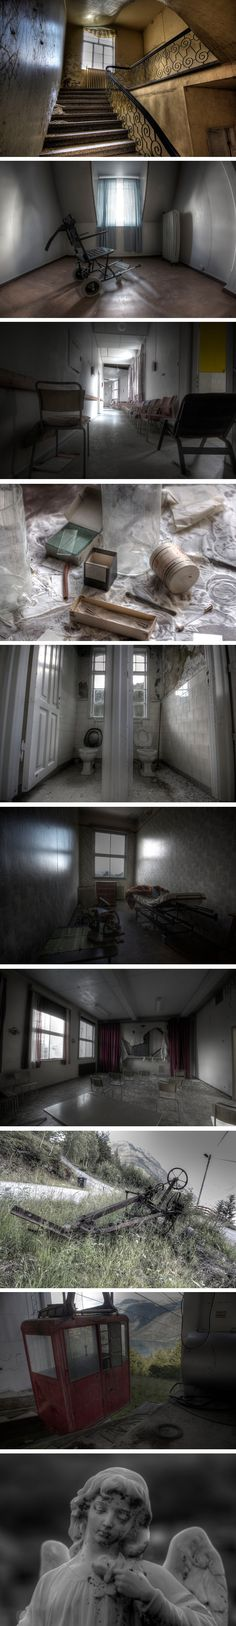 We've covered numerous abandoned hospitals to date, but this derelict sanatorium…